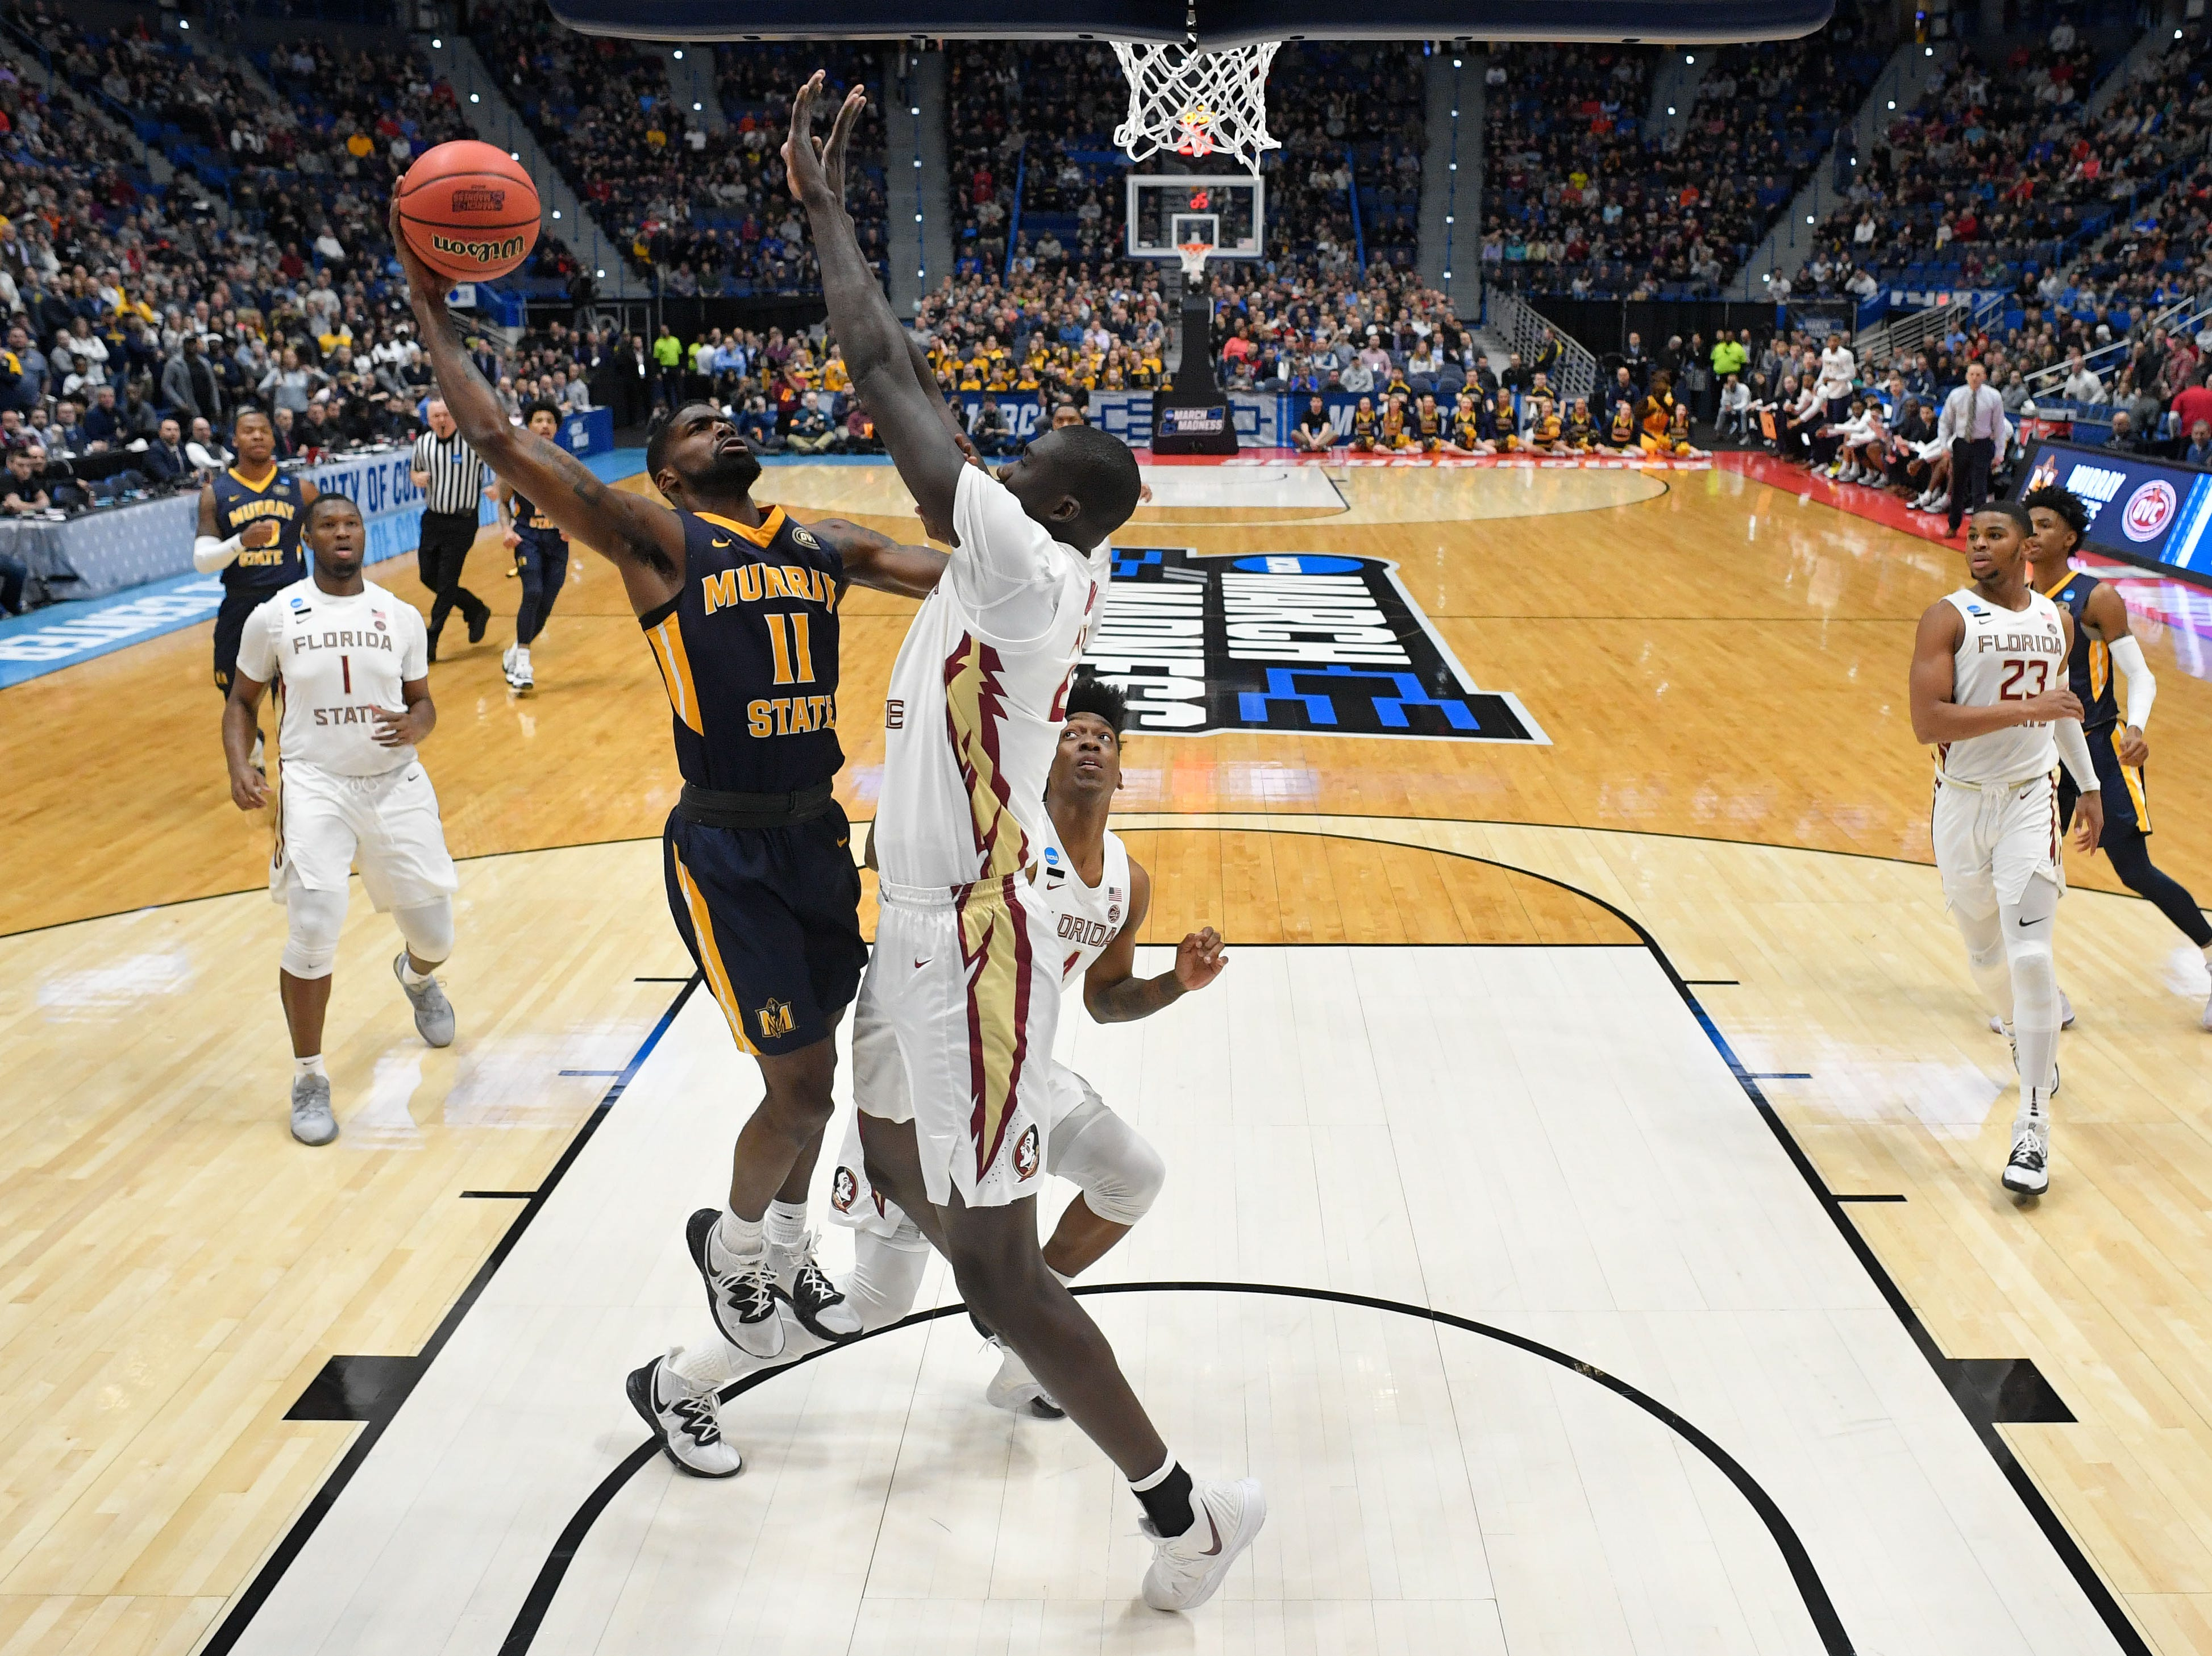 Mar 23, 2019; Hartford, CT, USA; Murray State Racers guard Shaq Buchanan (11) attempts a layup against Florida State Seminoles center Christ Koumadje (21) during the first half of a game in the second round of the 2019 NCAA Tournament at XL Center. Mandatory Credit: David Butler II-USA TODAY Sports